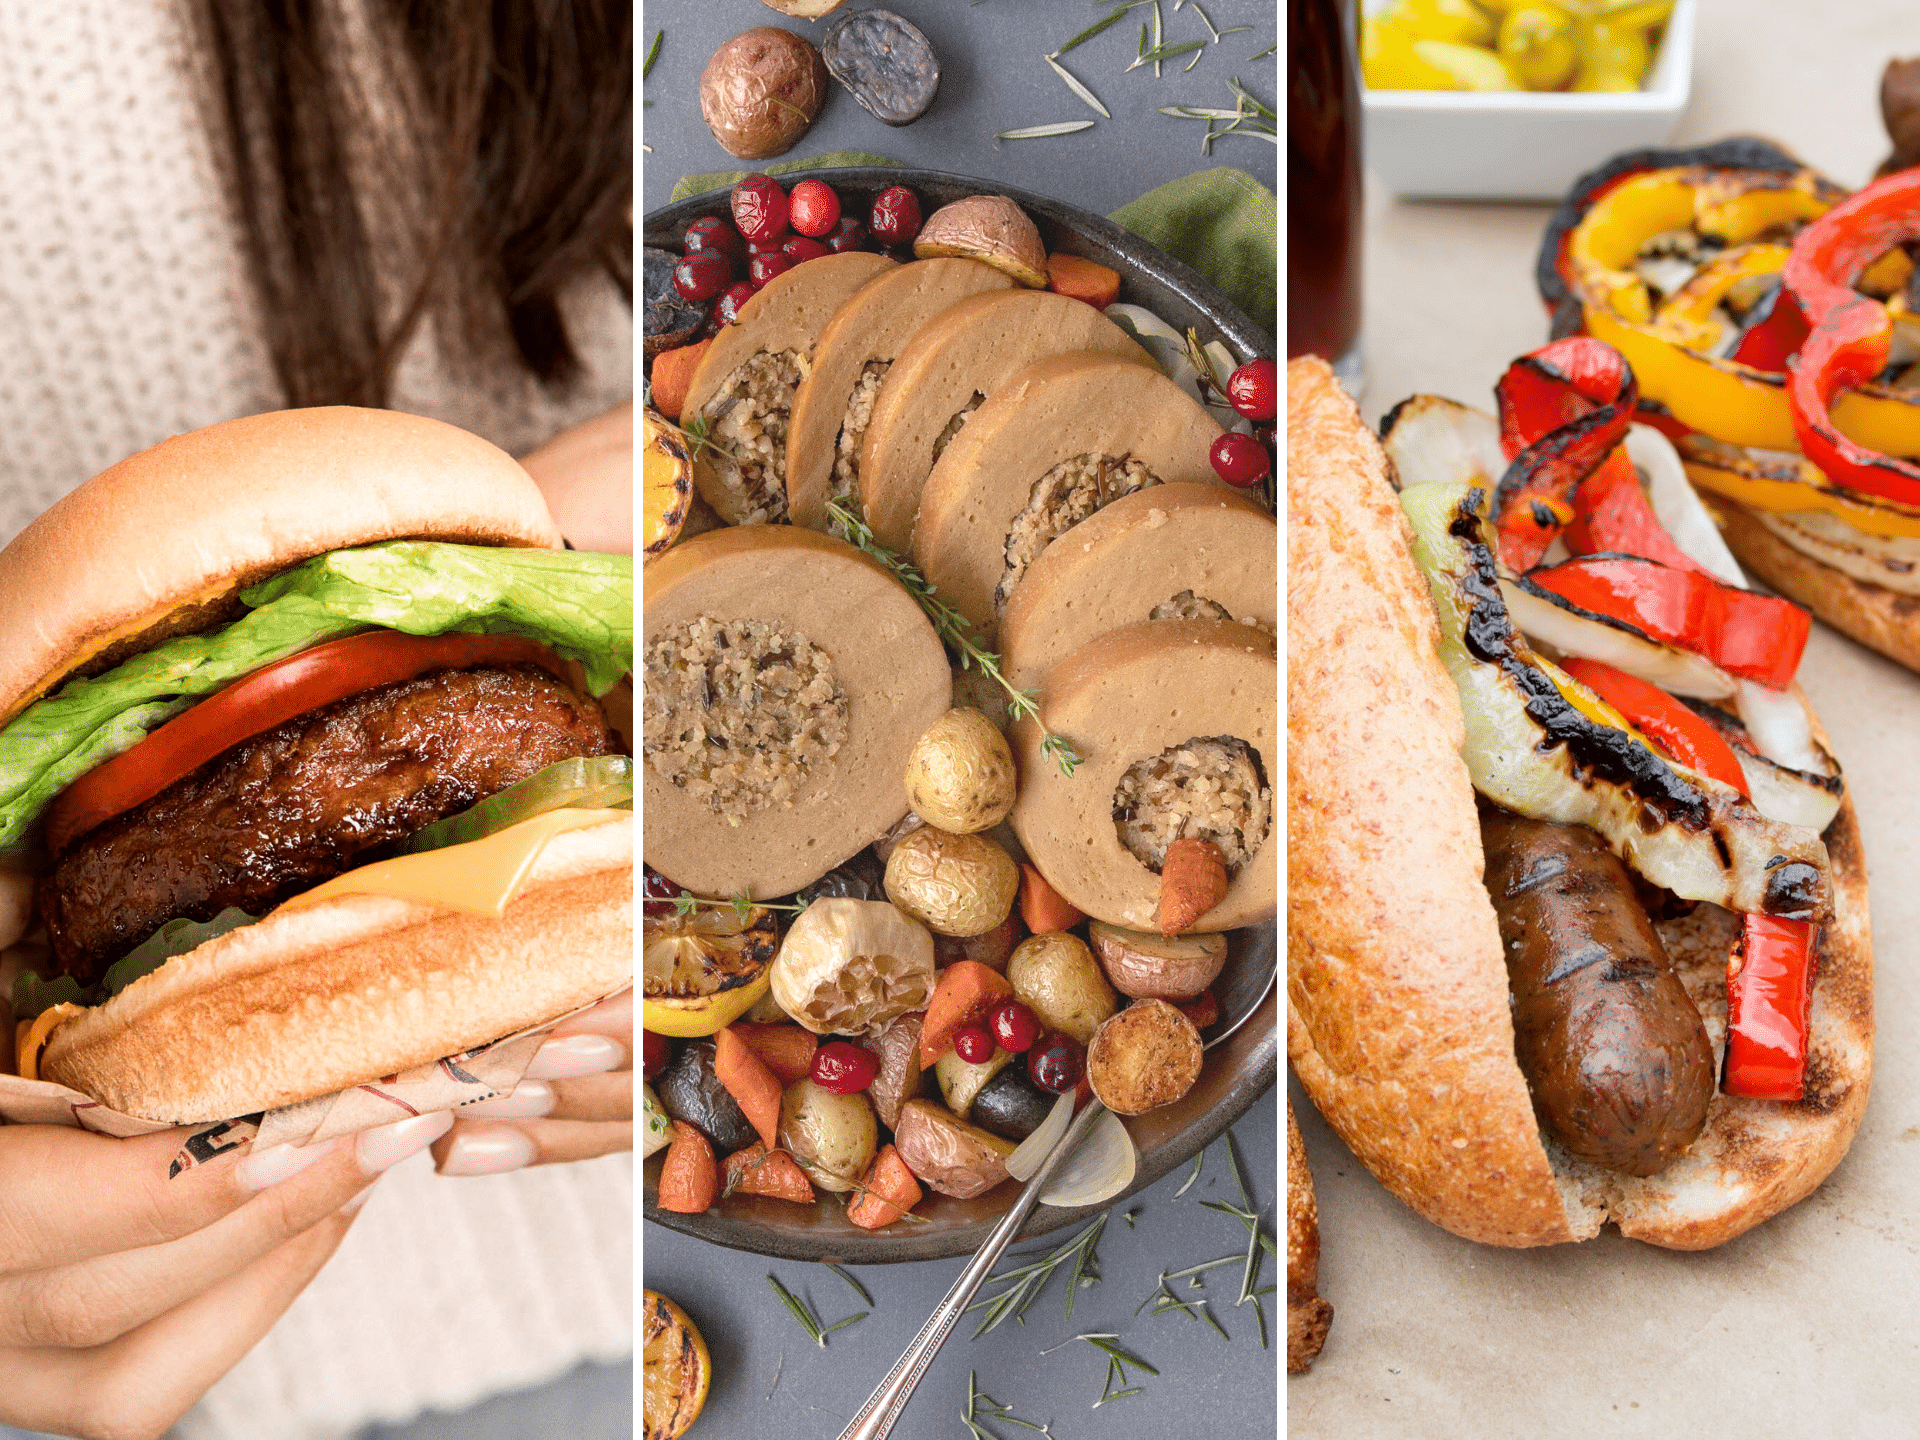 A collage of three pictures. The first one is a woman holding a burger. The second is a holiday roast with vegetables. The third is a plate of grilled sausage sandwiches.